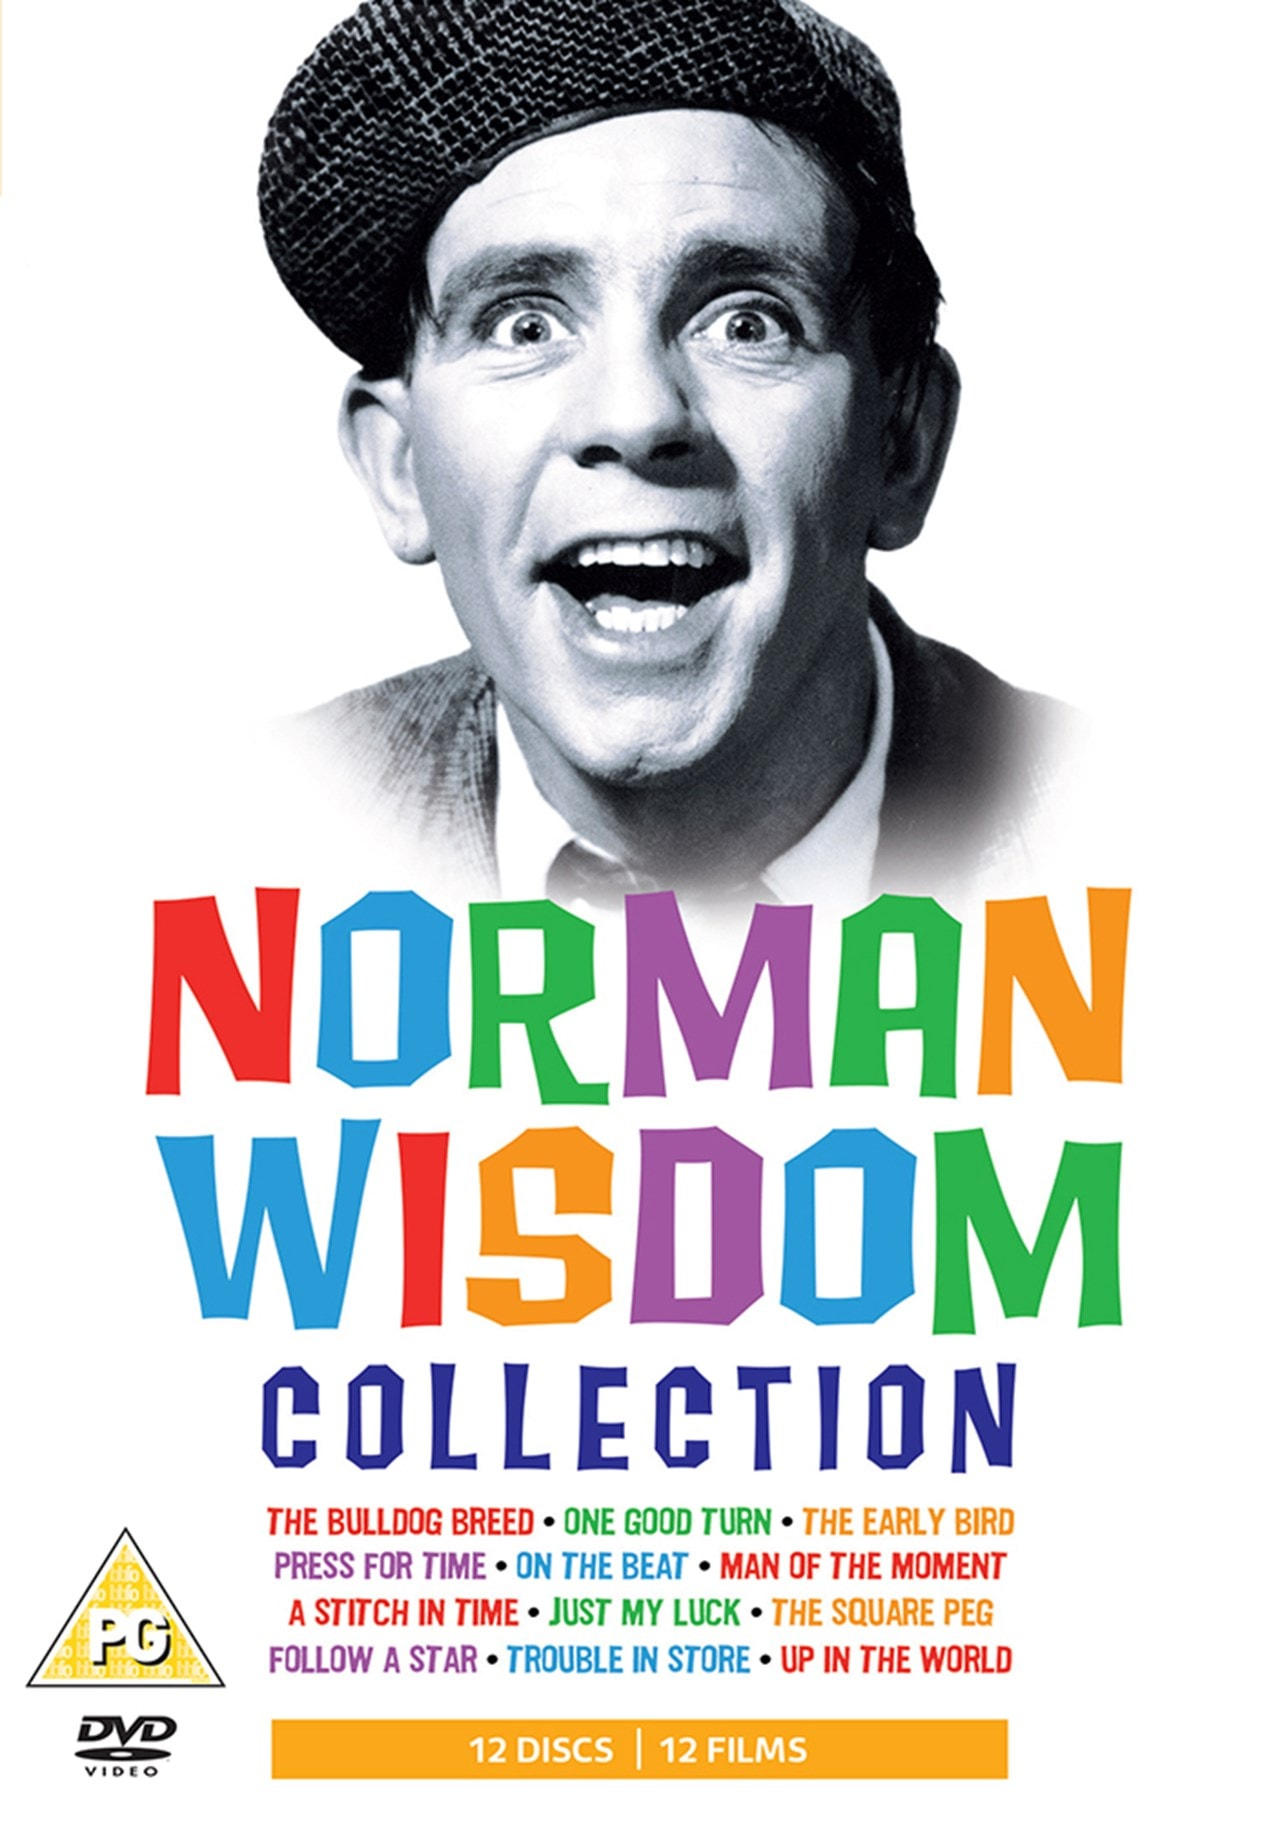 Norman Wisdom Collection - 1